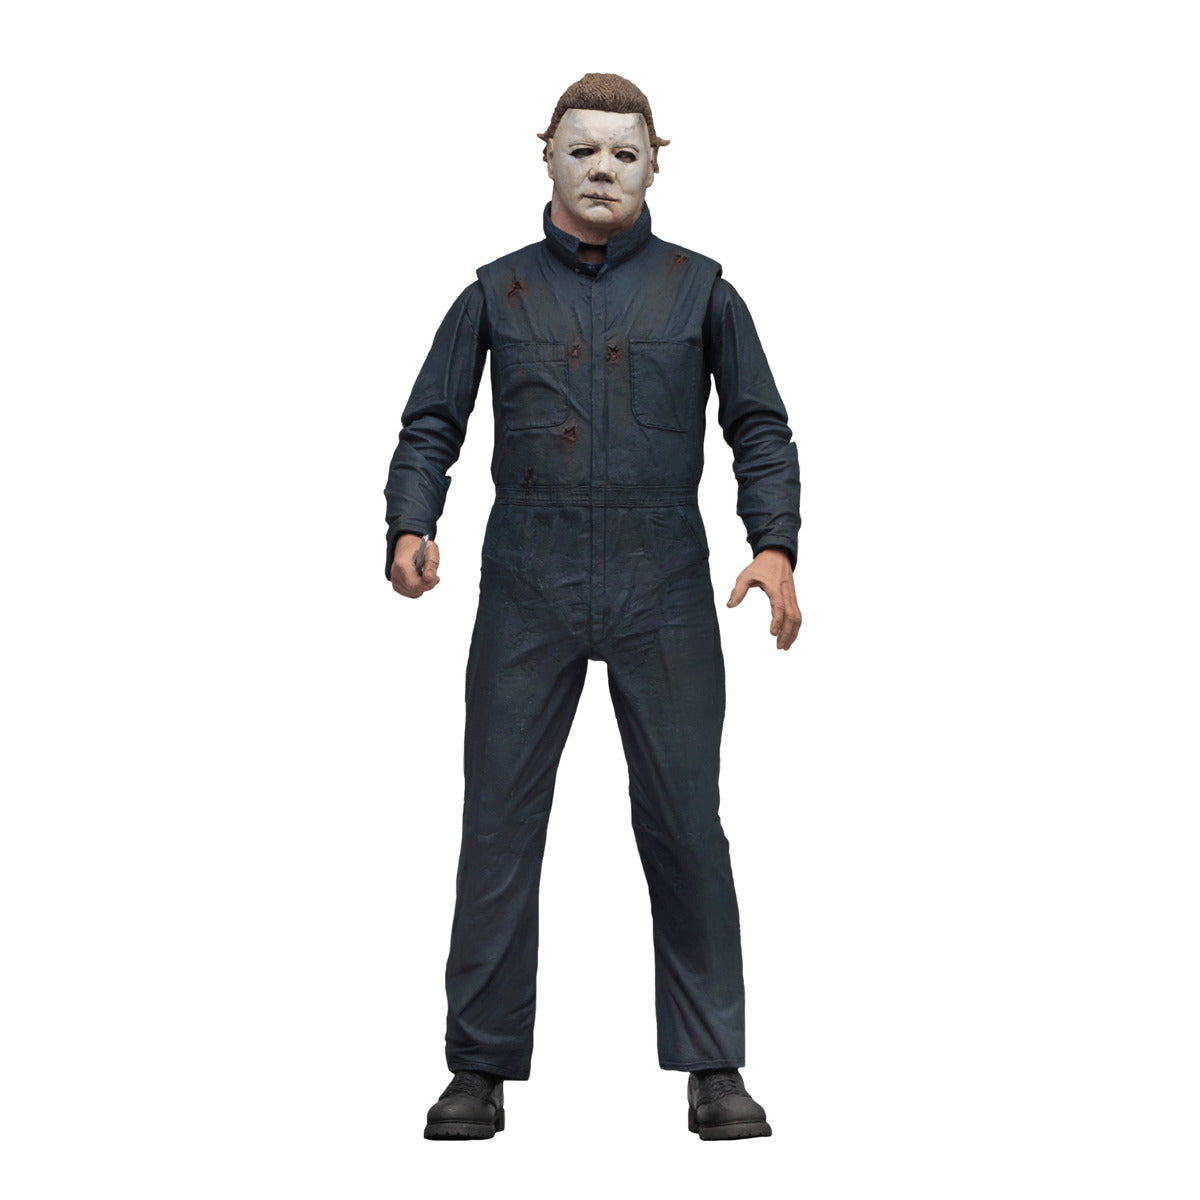 Halloween 2 Michael Myers Clothed 7 inch Action Figure